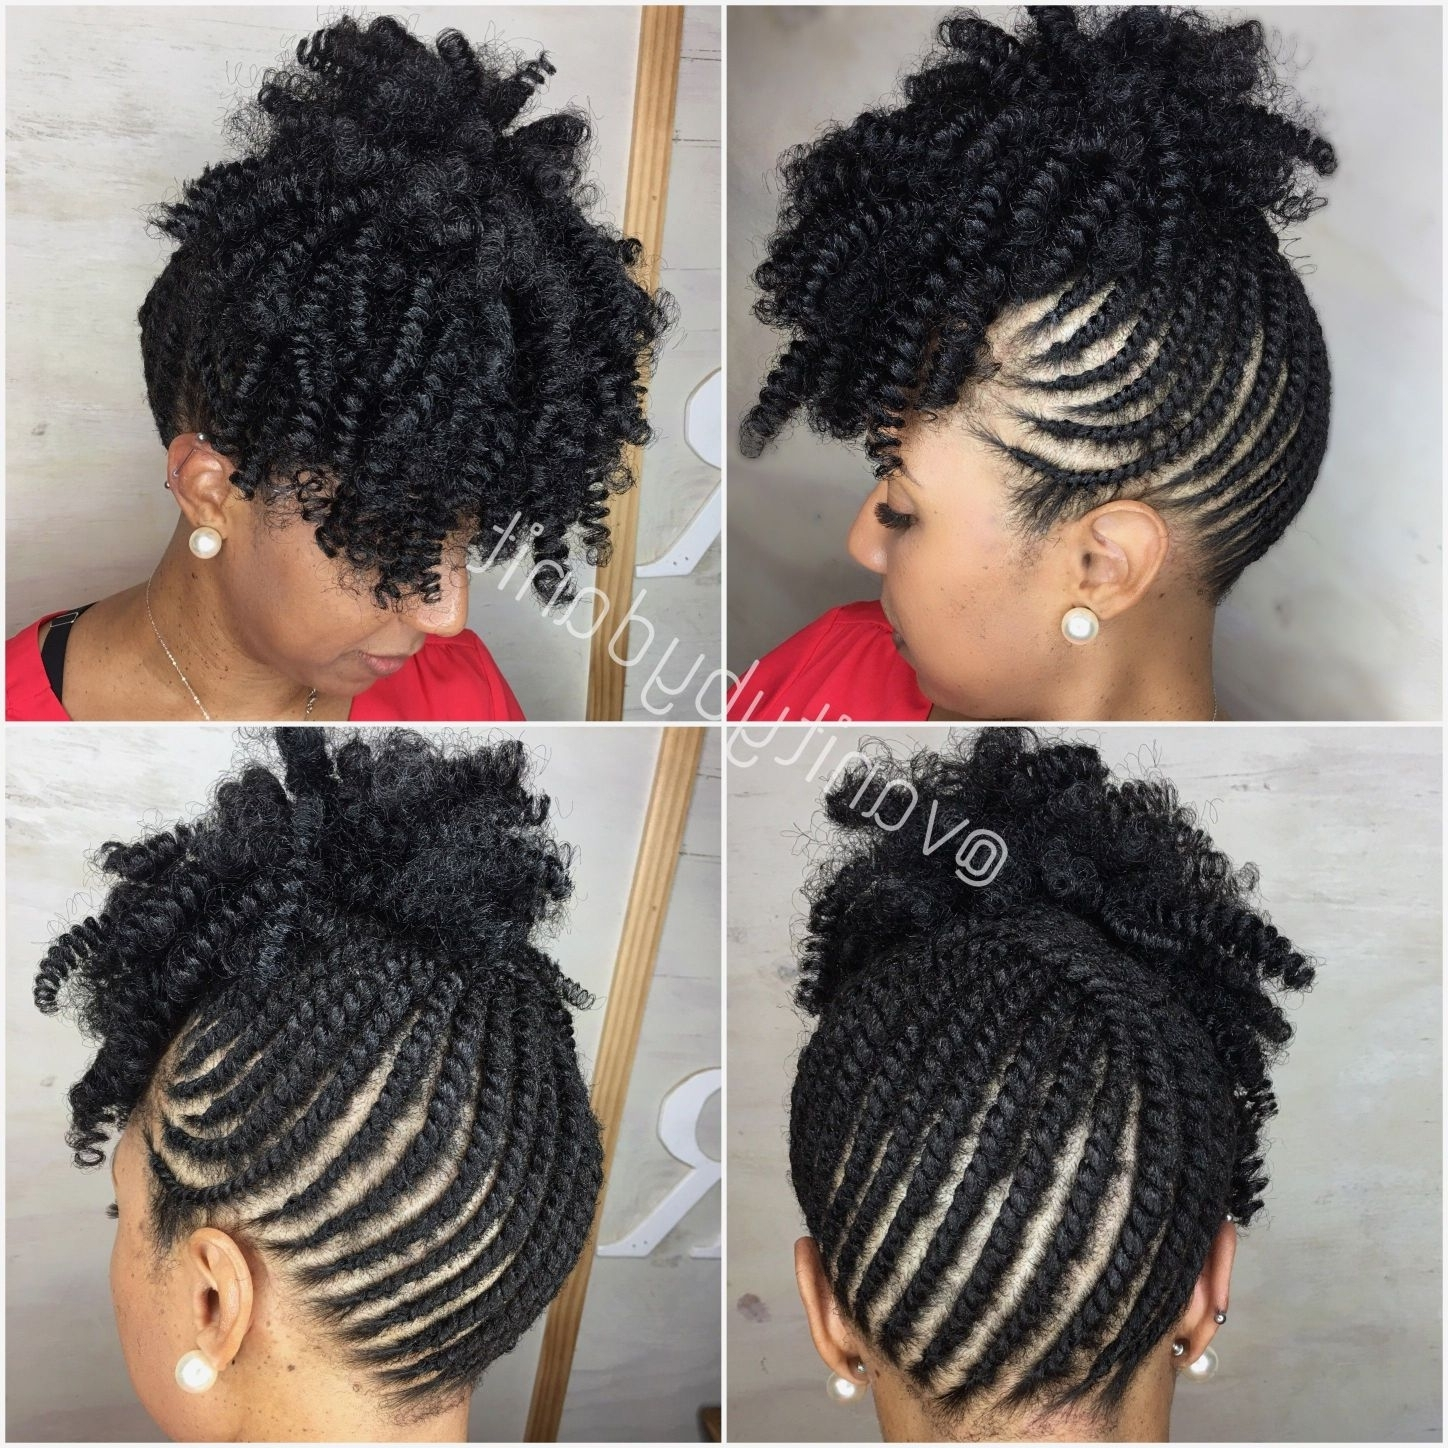 French Braid Hairstyles Natural Hair Beautiful Braided For Within Most Popular Braided Hairstyles For Natural Hair (View 3 of 15)